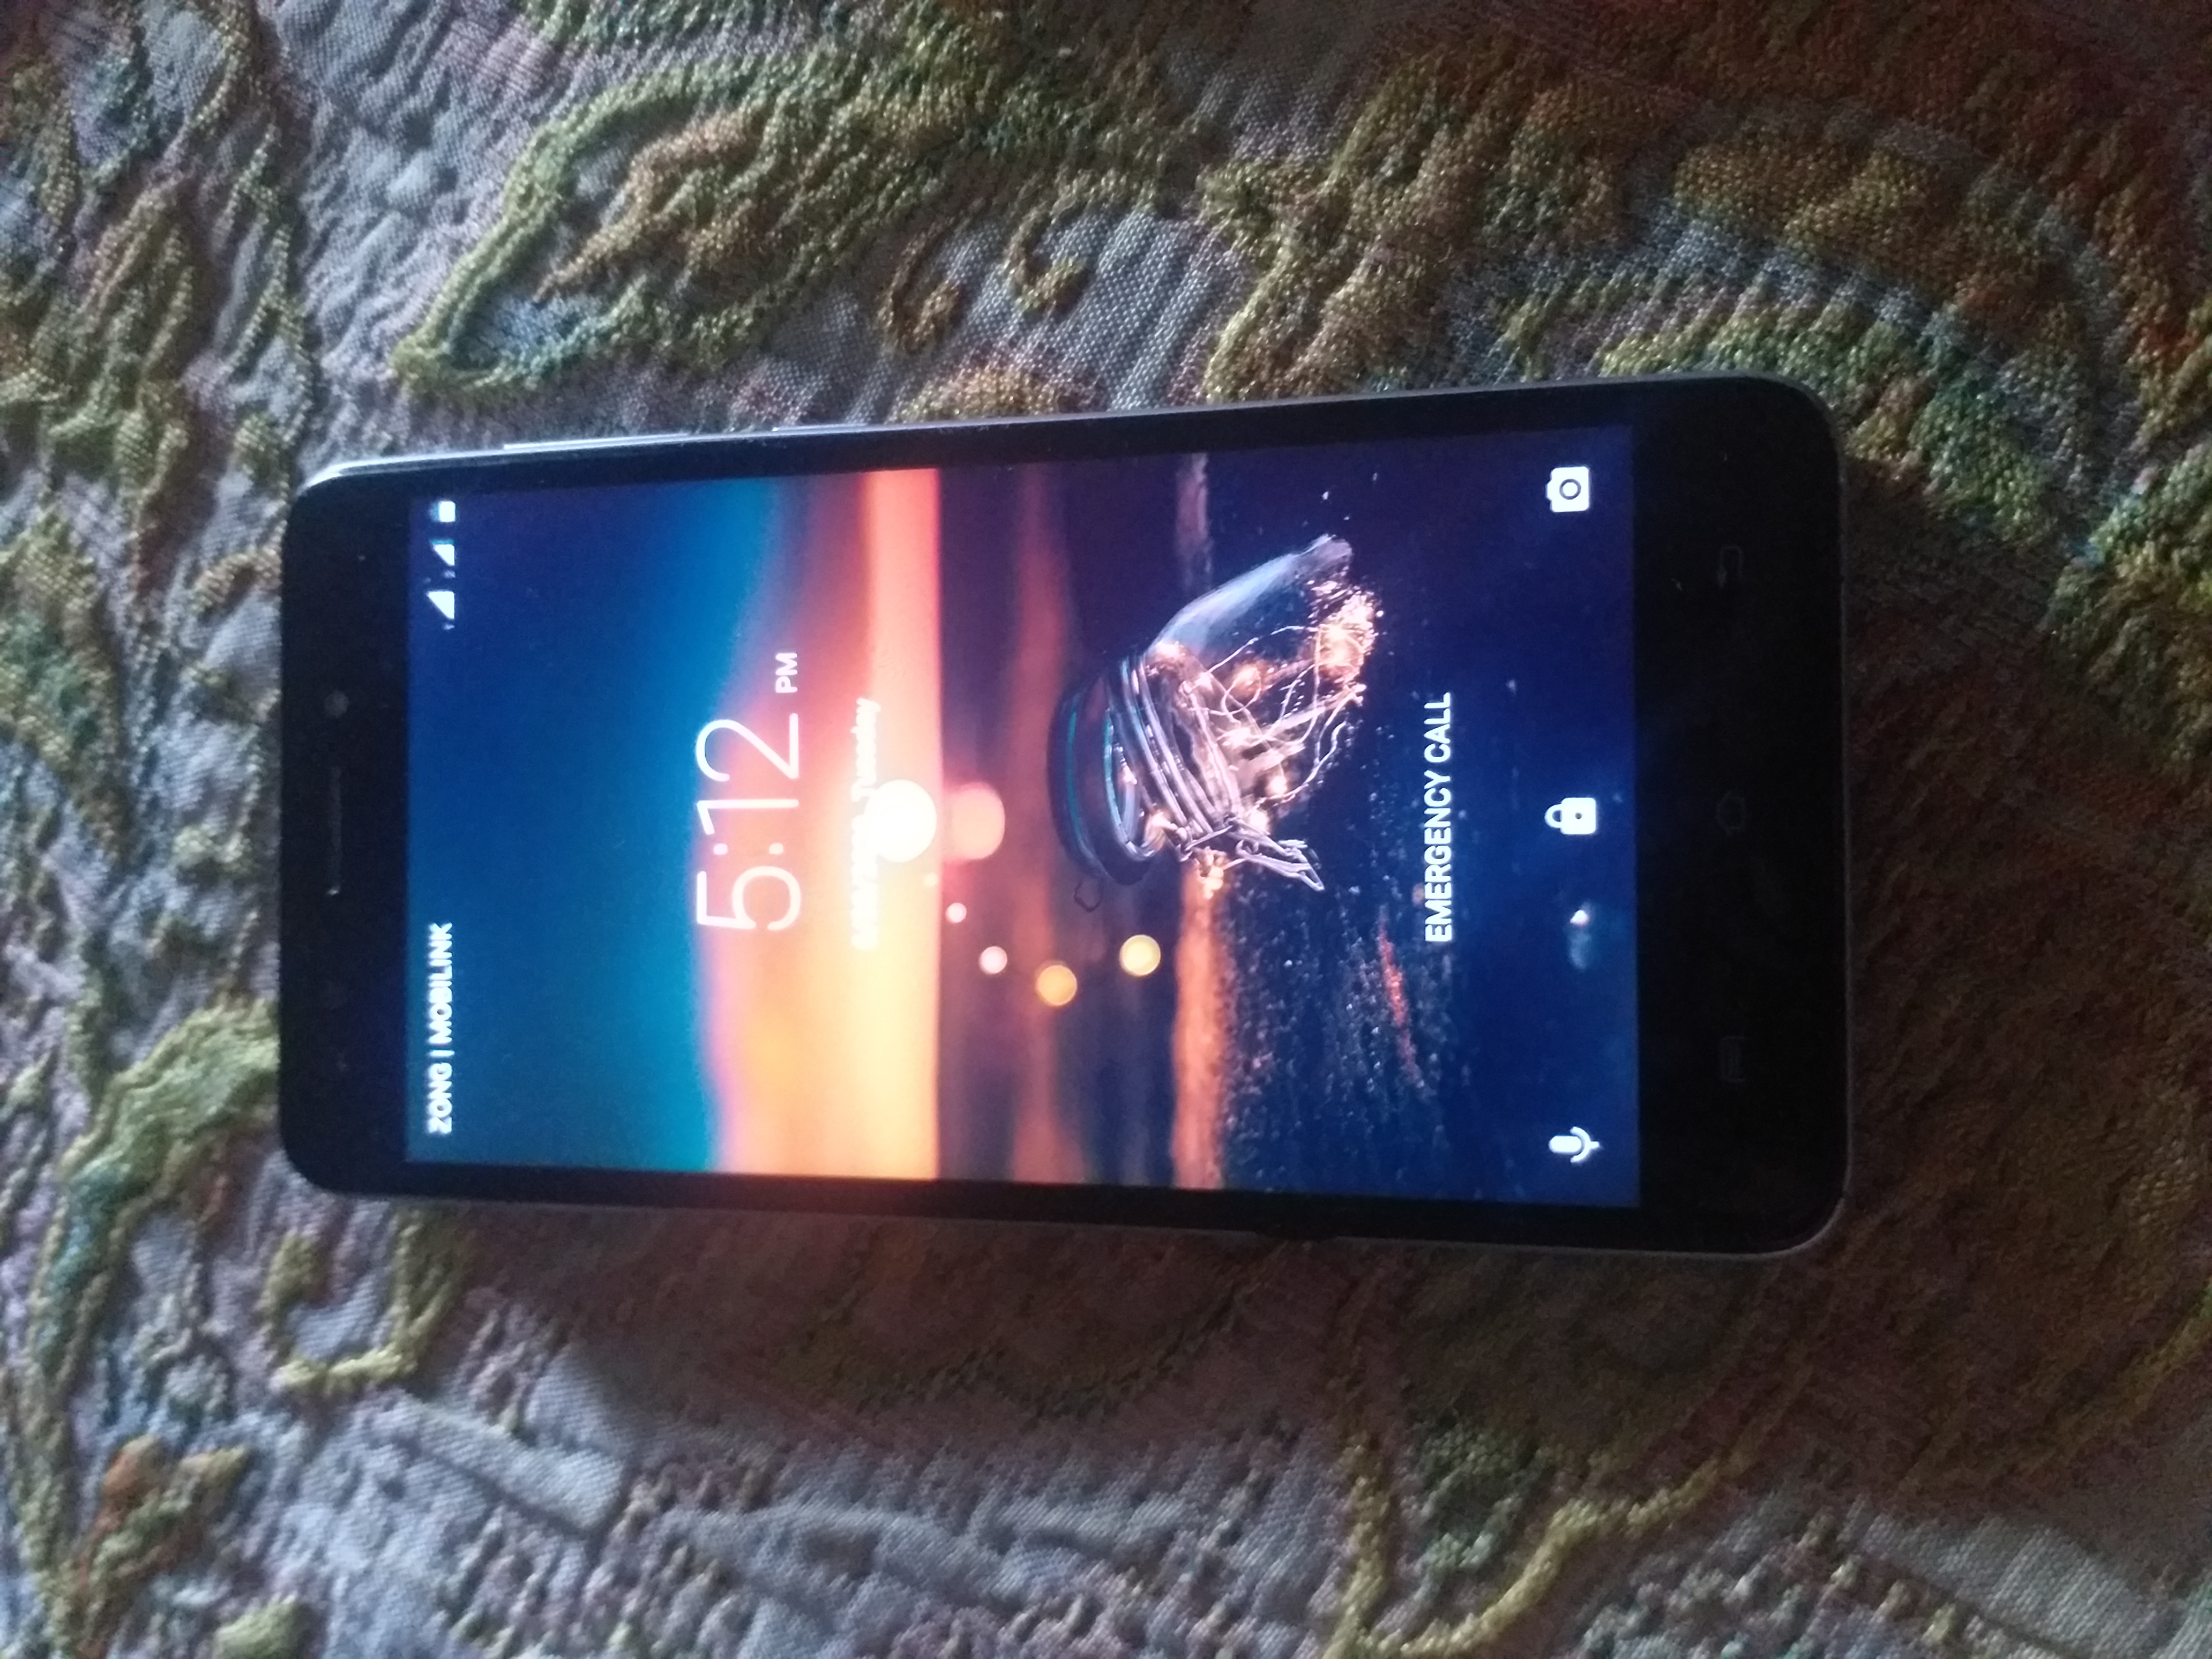 Lava iris 870 for sale and exchang with good phone - photo 1